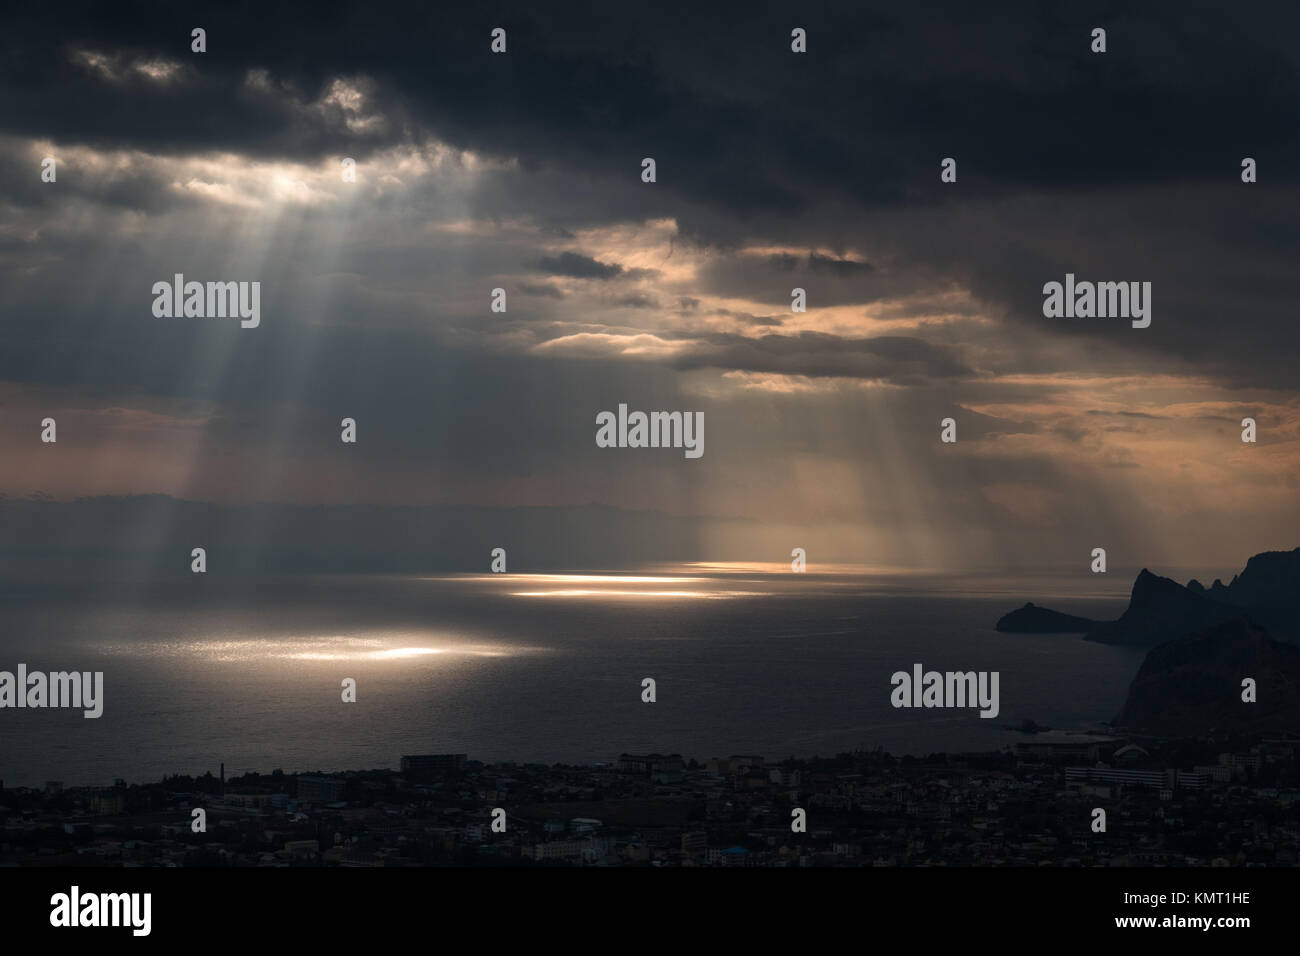 ominous clouds and the bursting rays of light over the gulf sea Stock Photo